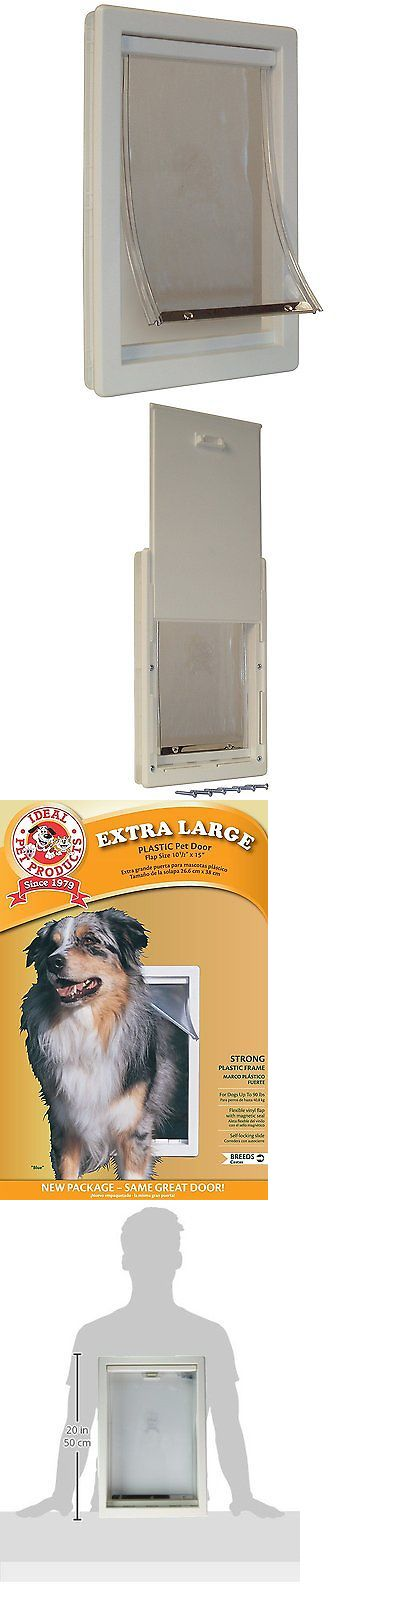 Doors And Flaps 116379 Large Breed Doggy Door Sturdy Thermoplastic